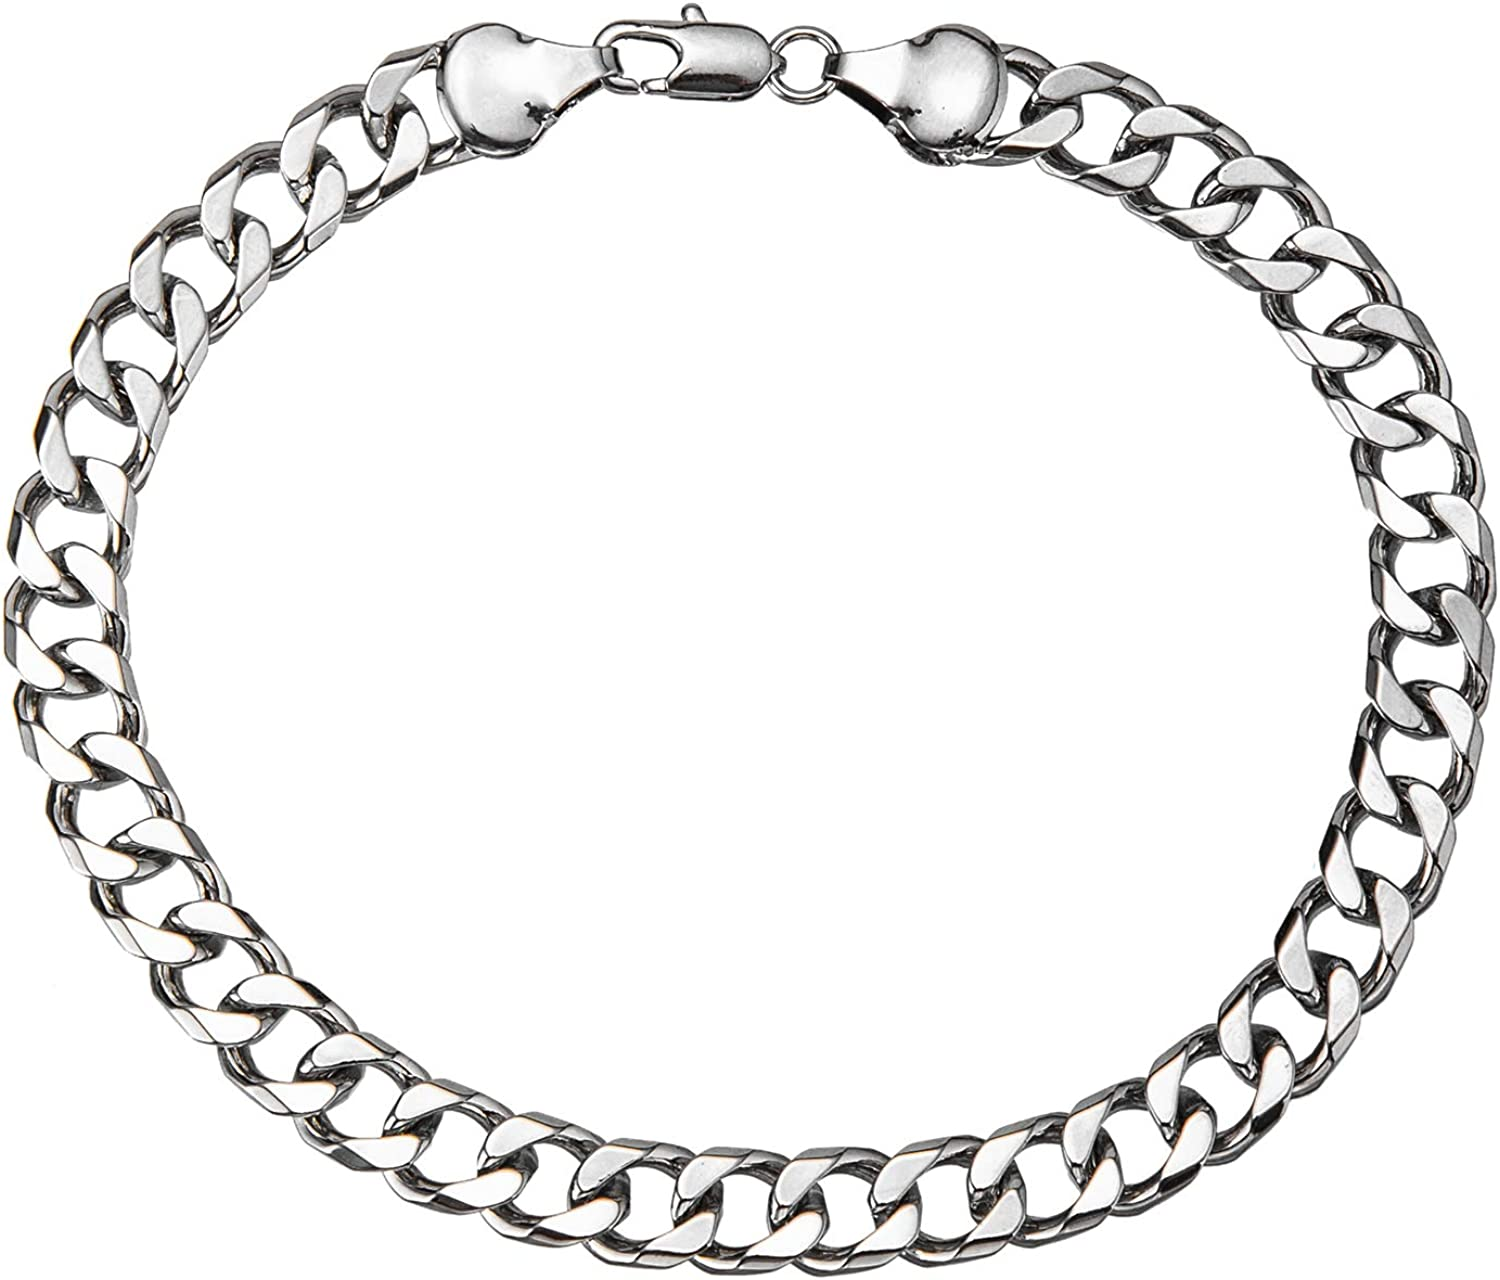 2021 spring and summer new 18K Gold White Plated 7mm Cuban Anklet Chain Women Link for Online limited product